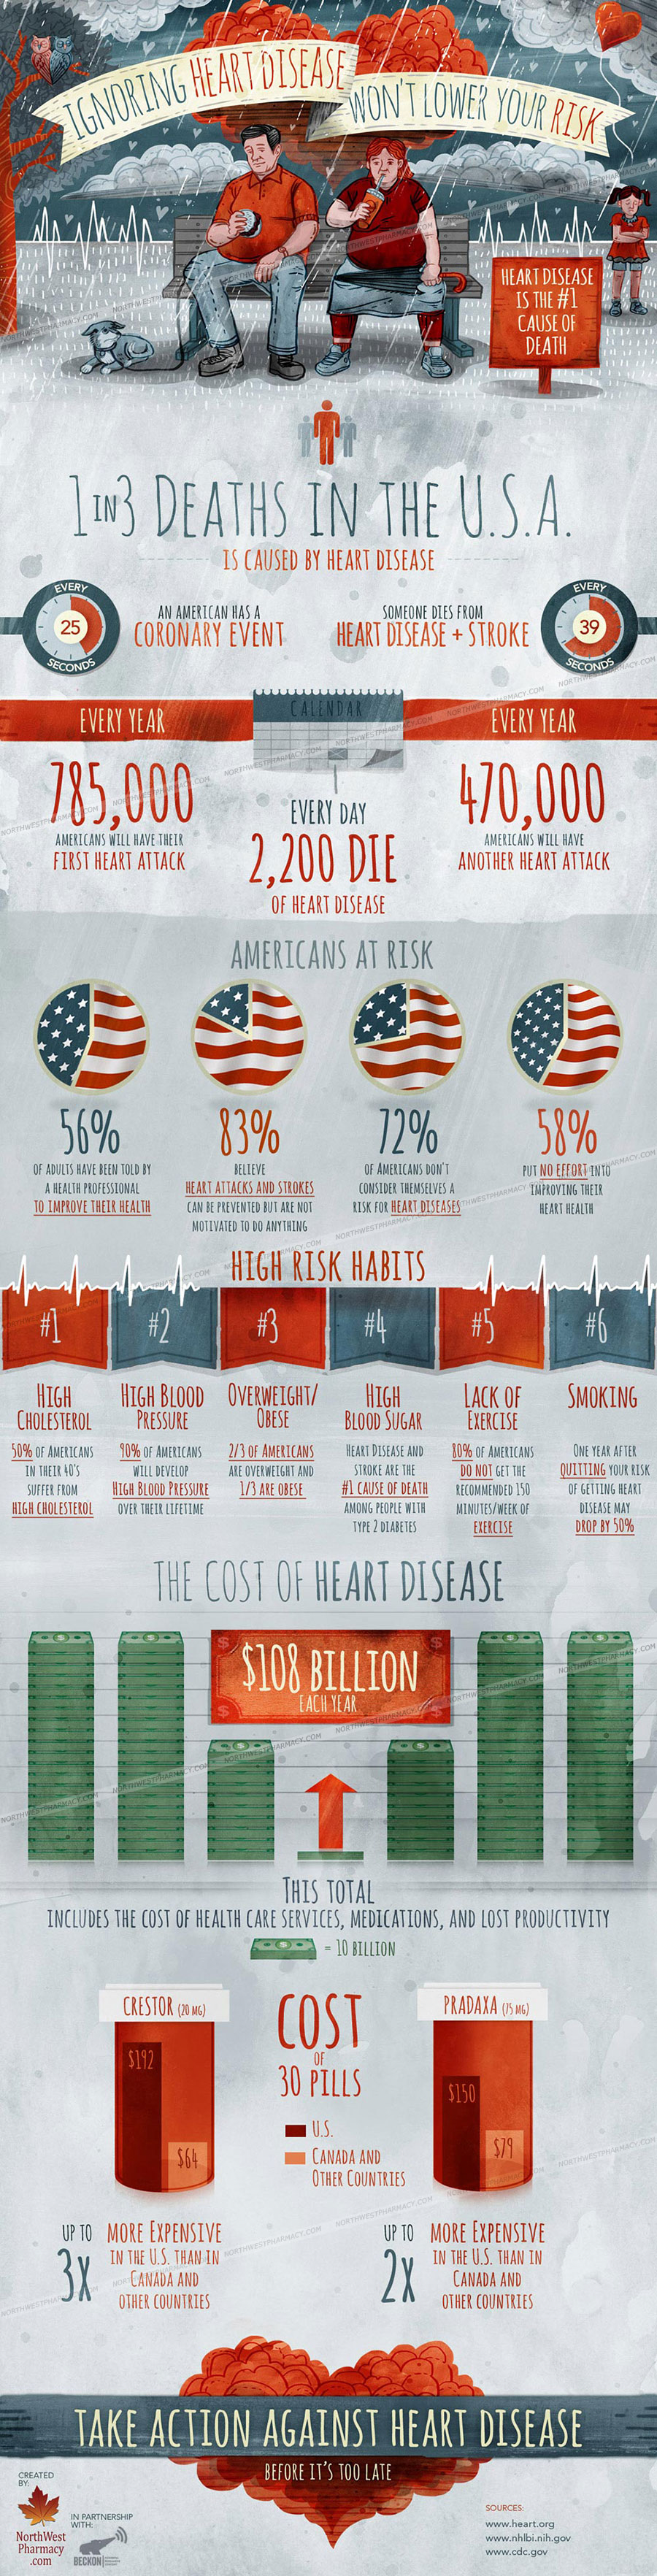 Lower Heart Disease Risk-Infographic